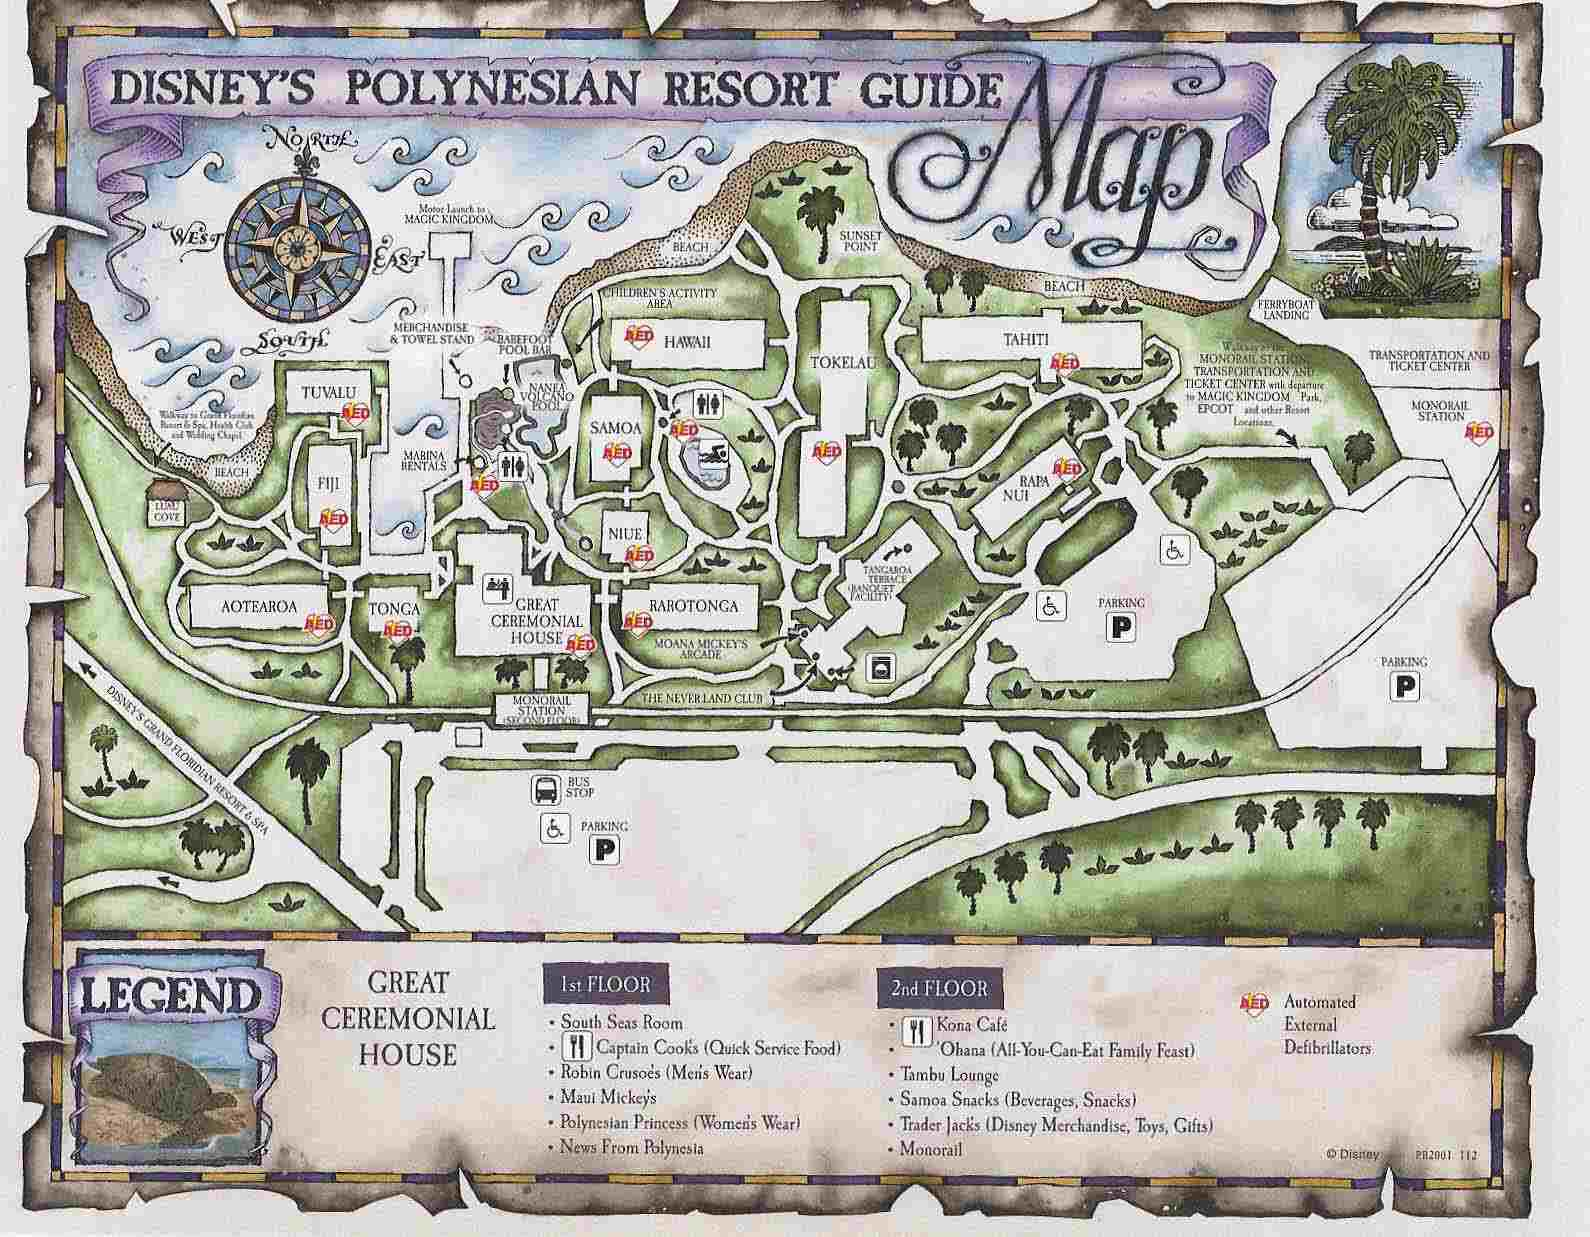 Disney World Maps for Each Resort on kailua-kona map, rochester hotel map, providence hotel map, seattle hotel map, san jose hotel map, eugene hotel map, giant hotel map, honolulu hotel map, hawaii hotel map, bristol hotel map, waikoloa map, miami hotel map, nashville hotel map, easton hotel map, oahu hotel map, orlando hotel map, tulsa hotel map, new york hotel map, chicago hotel map, philadelphia hotel map,